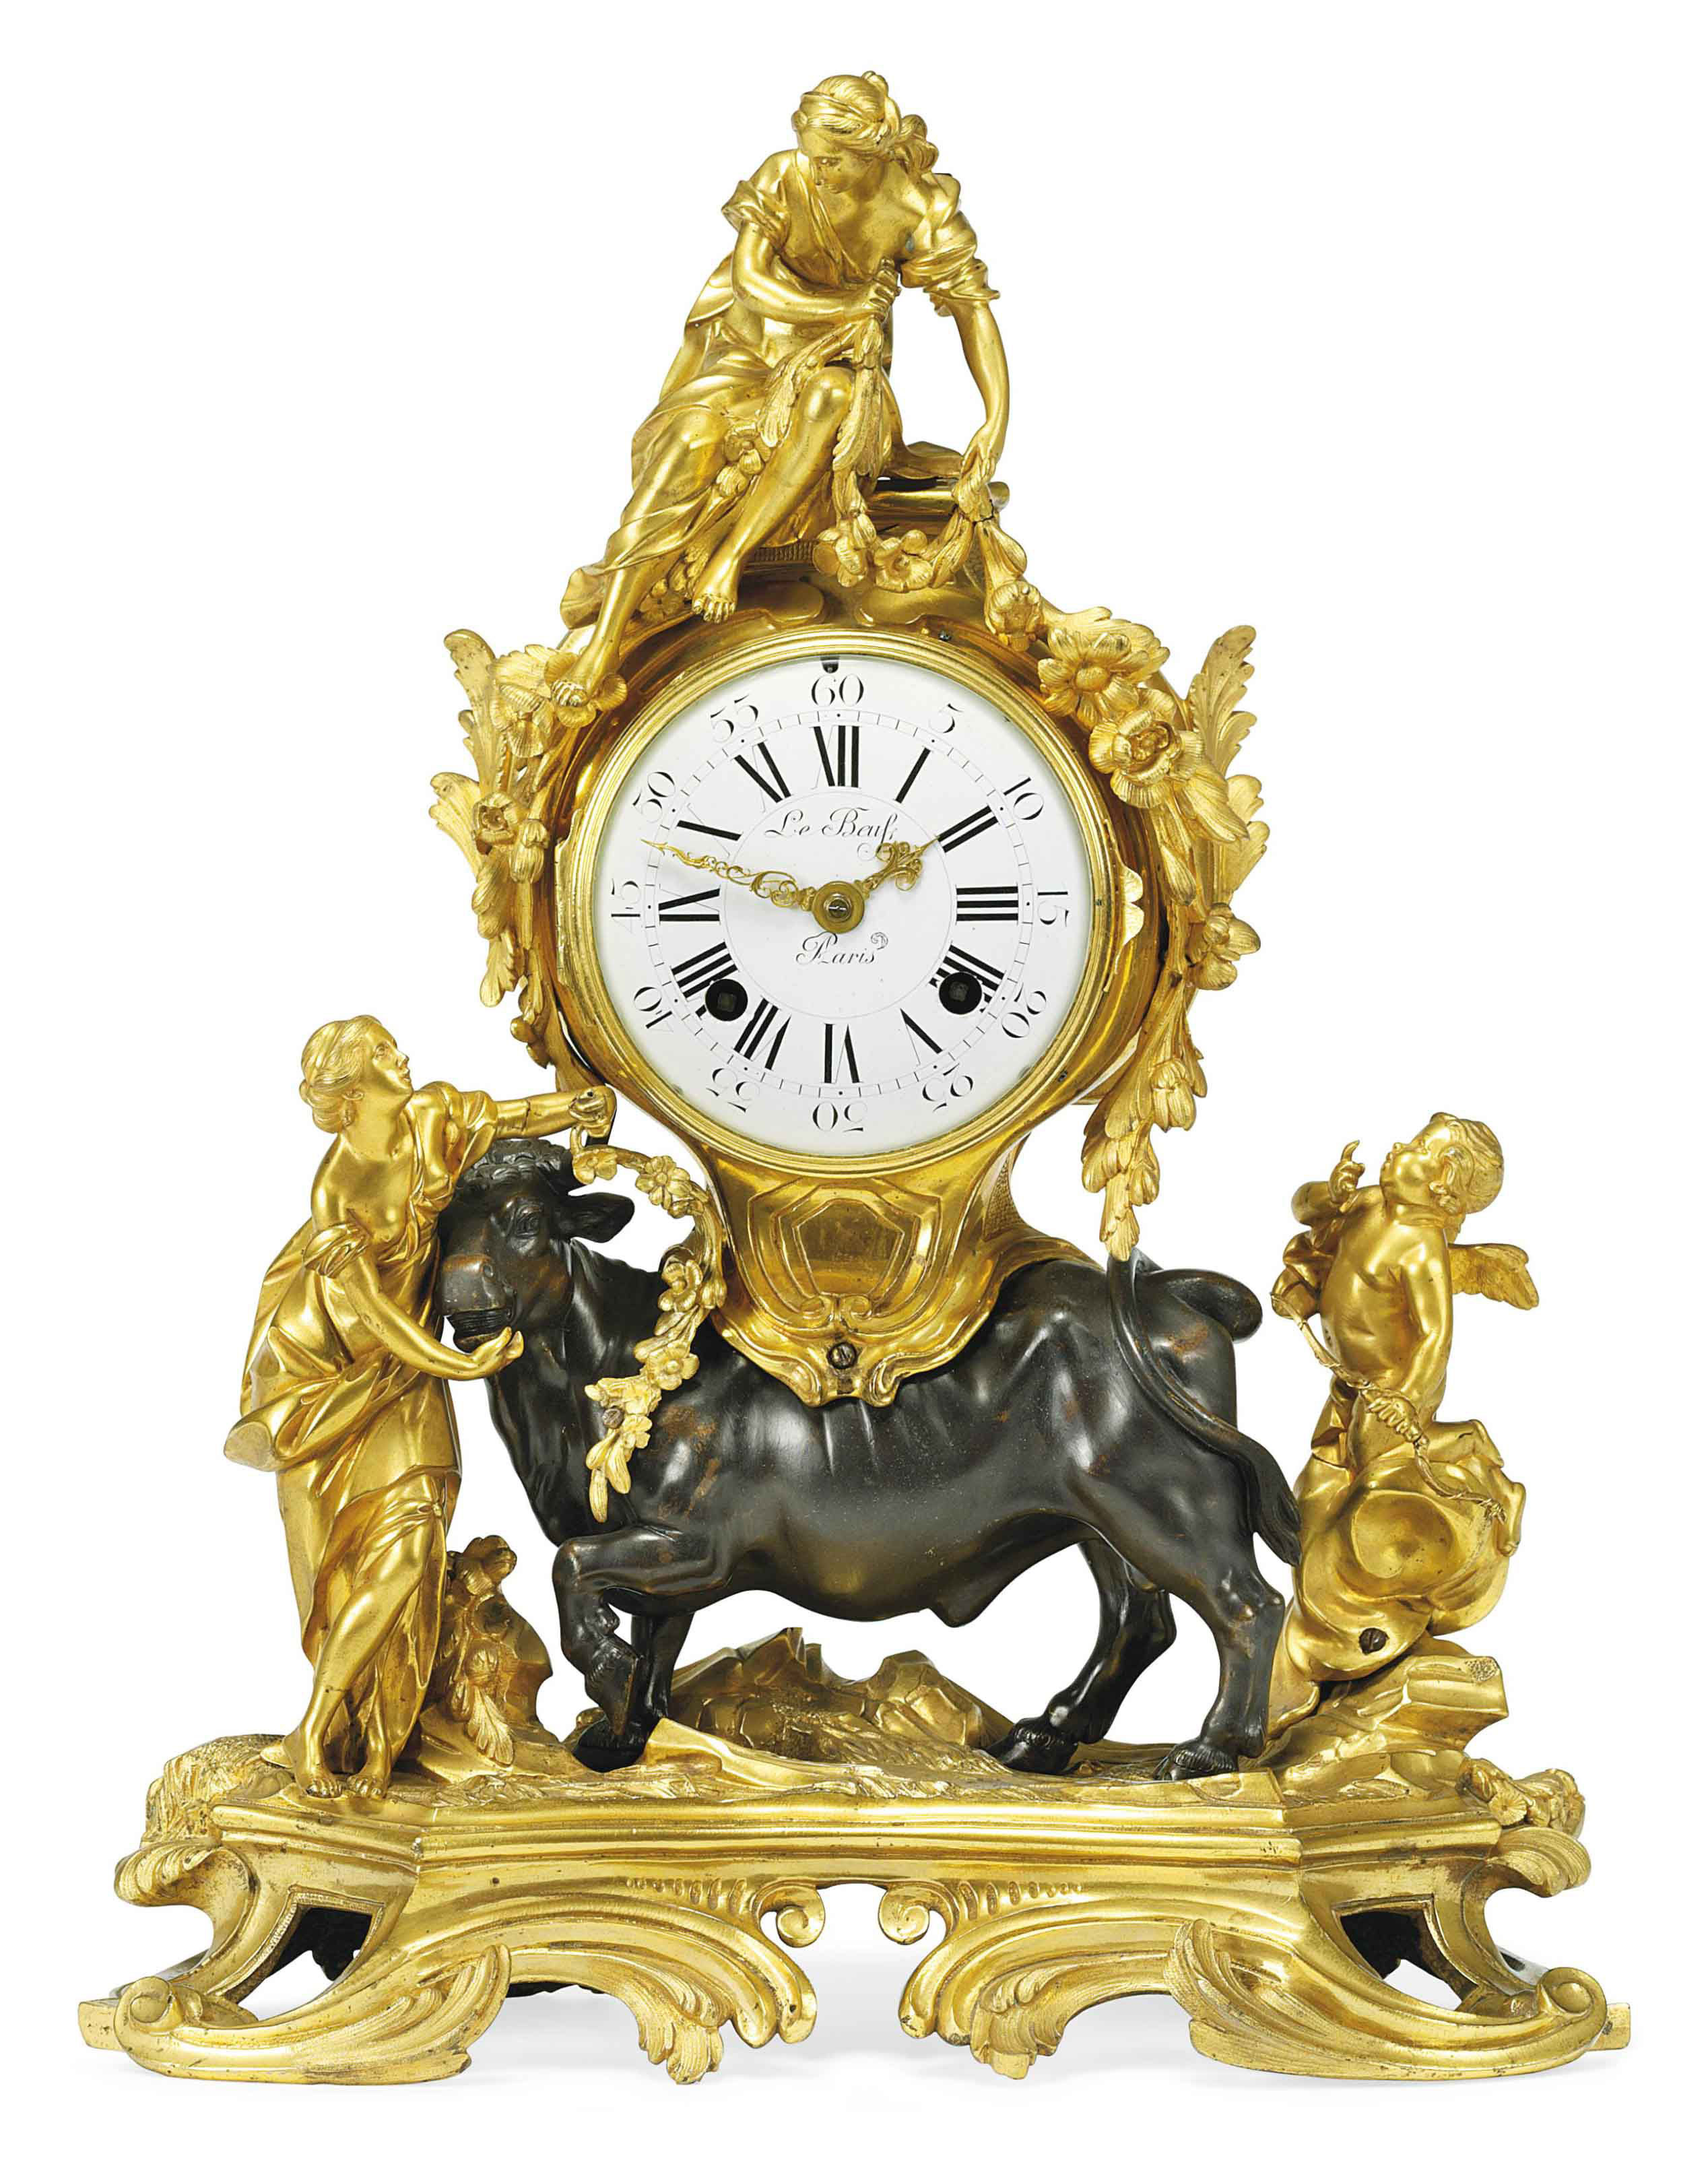 A FRENCH ORMOLU AND PATINATED-BRONZE MANTEL CLOCK: THE RAPE OF EUROPA